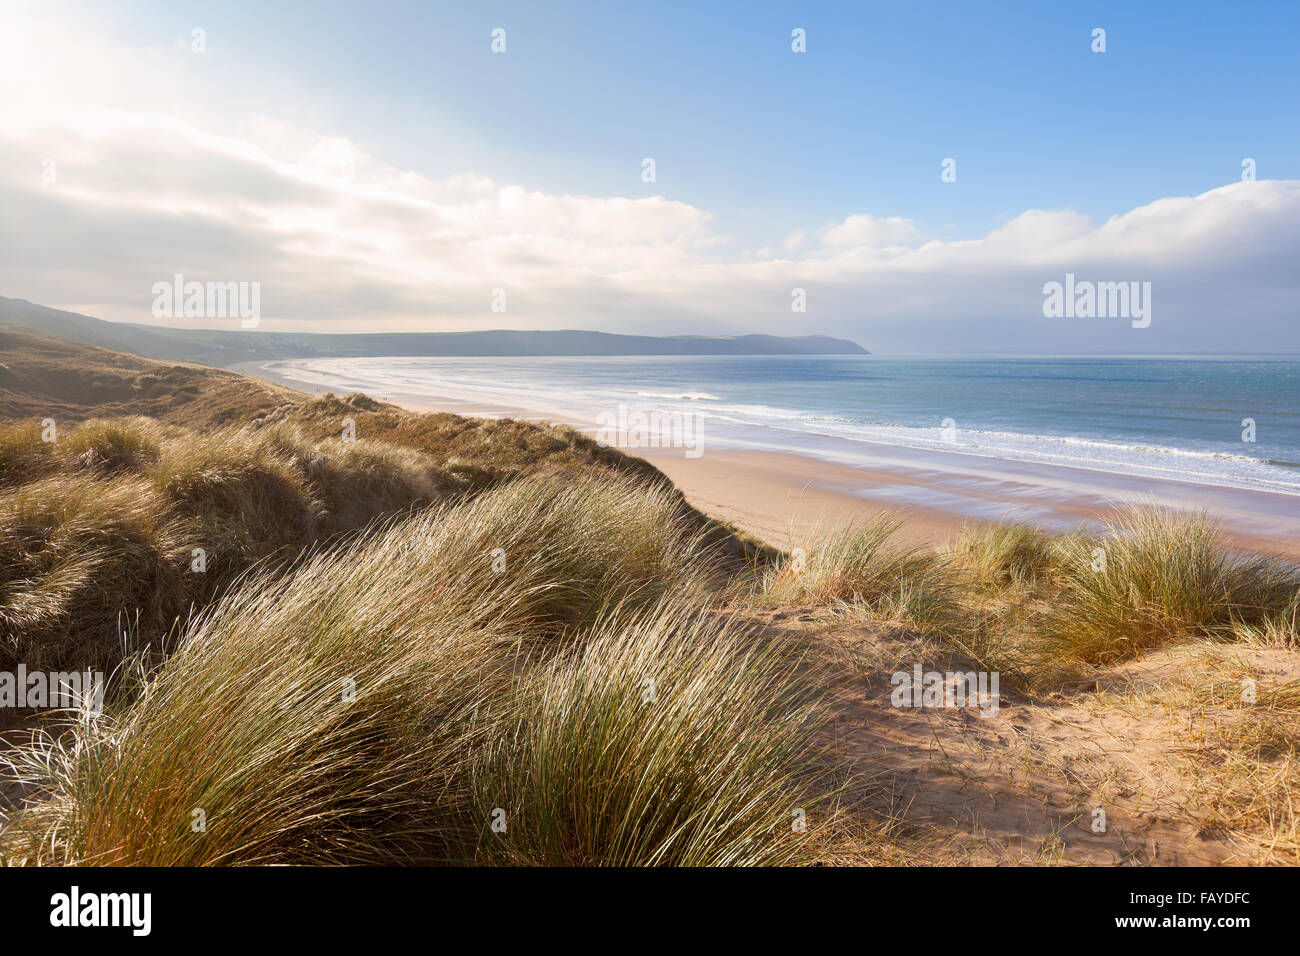 Windswept grass on the sand dunes above Woolacombe beach in North Devon, England - Stock Image